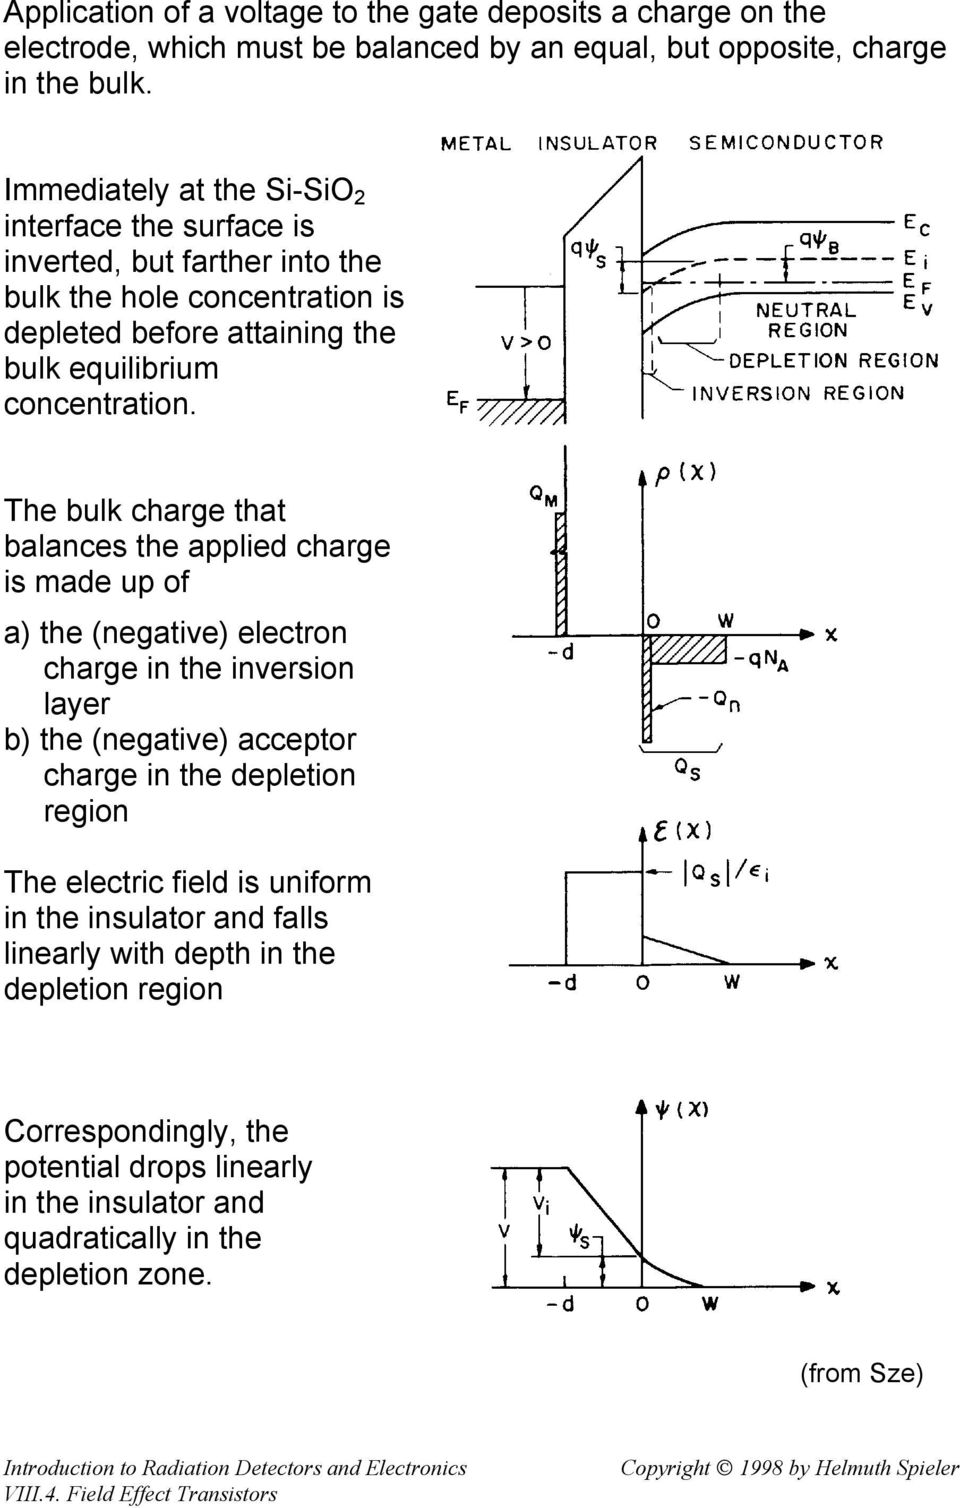 The bulk charge that balances the applied charge is made up of a) the (negative) electron charge in the inversion layer b) the (negative) acceptor charge in the depletion